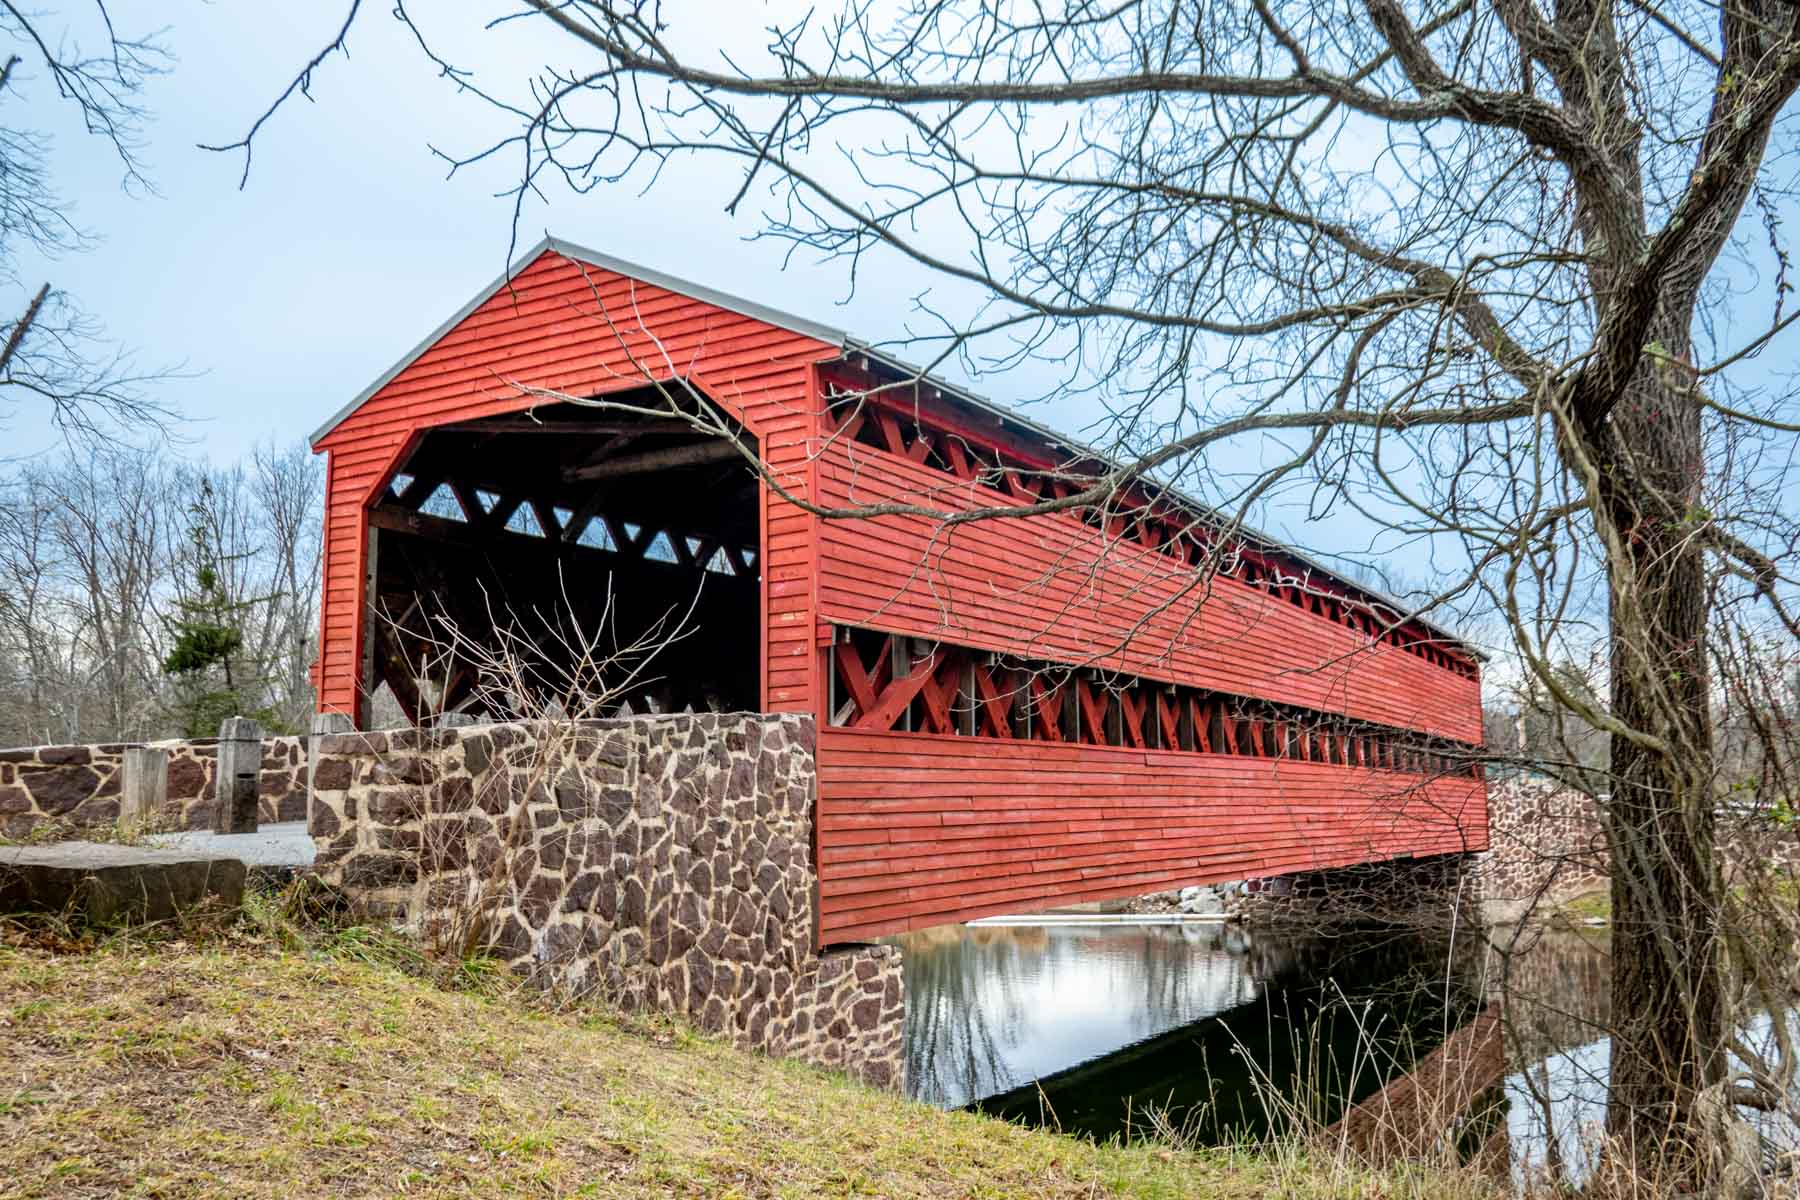 Sachs Covered Bridge, a red covered bridge from the 1850s over a creek in Gettysburg PA